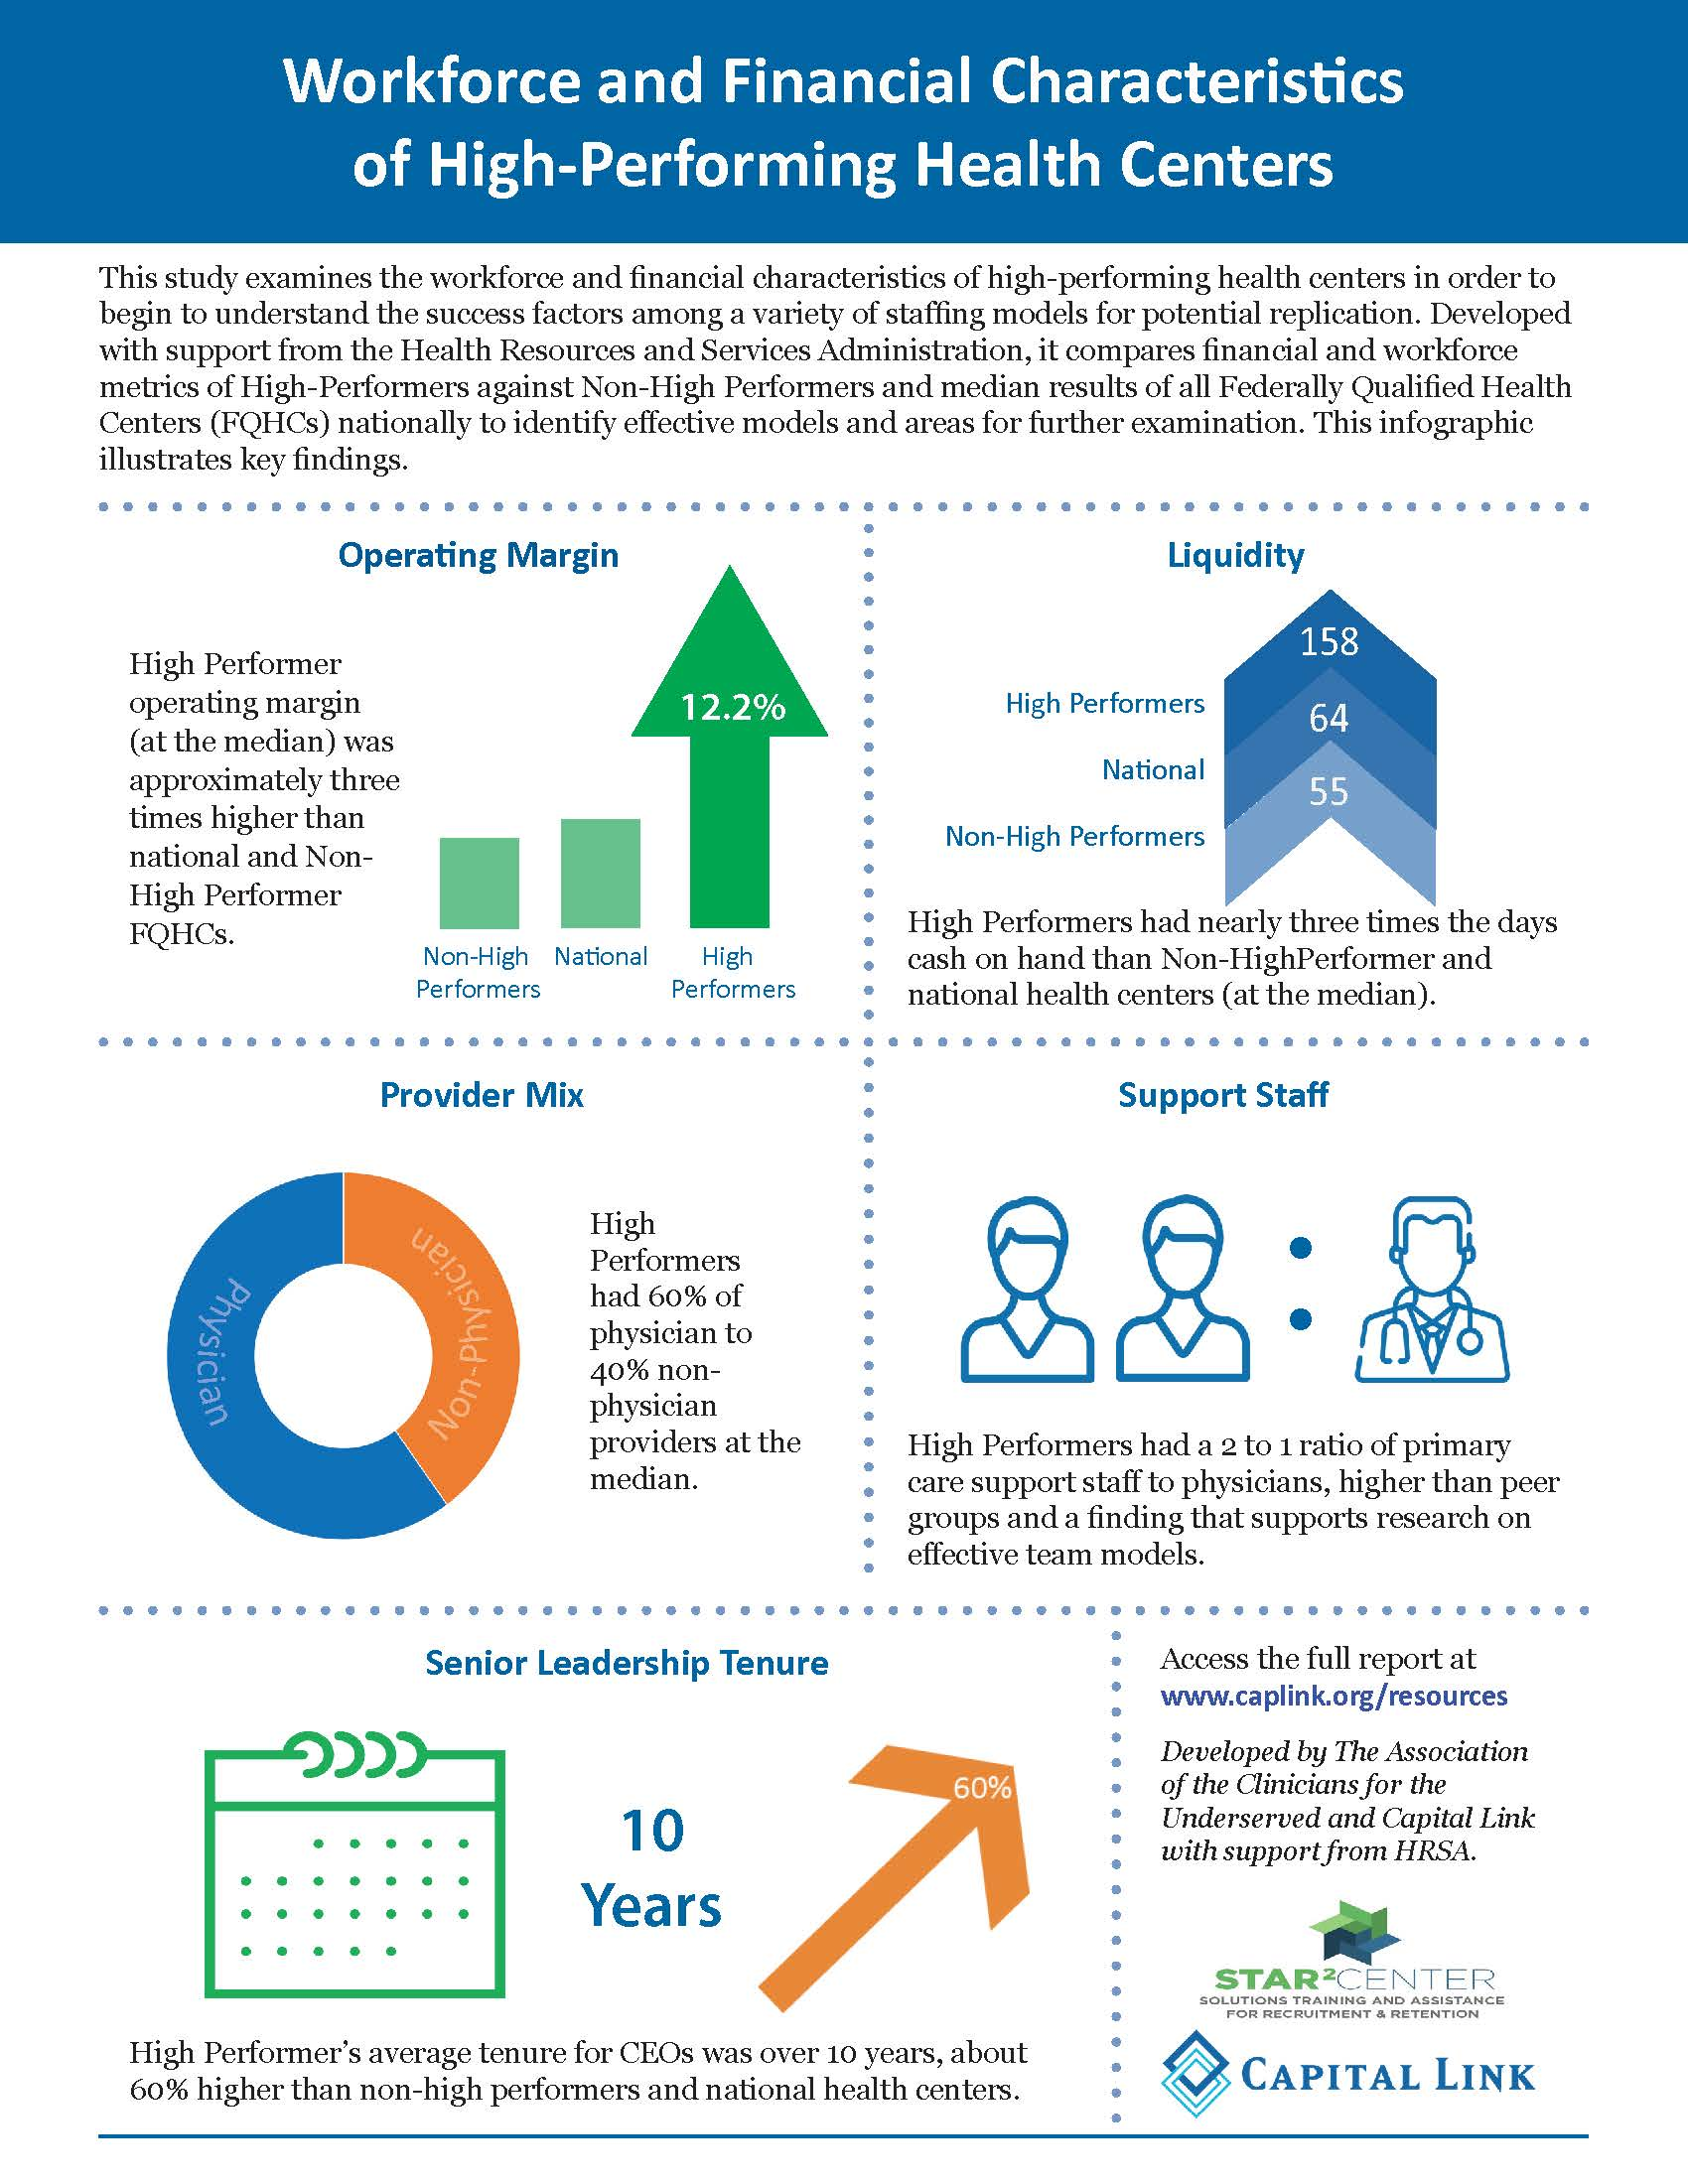 Workforce and Financial Trends Infographic final